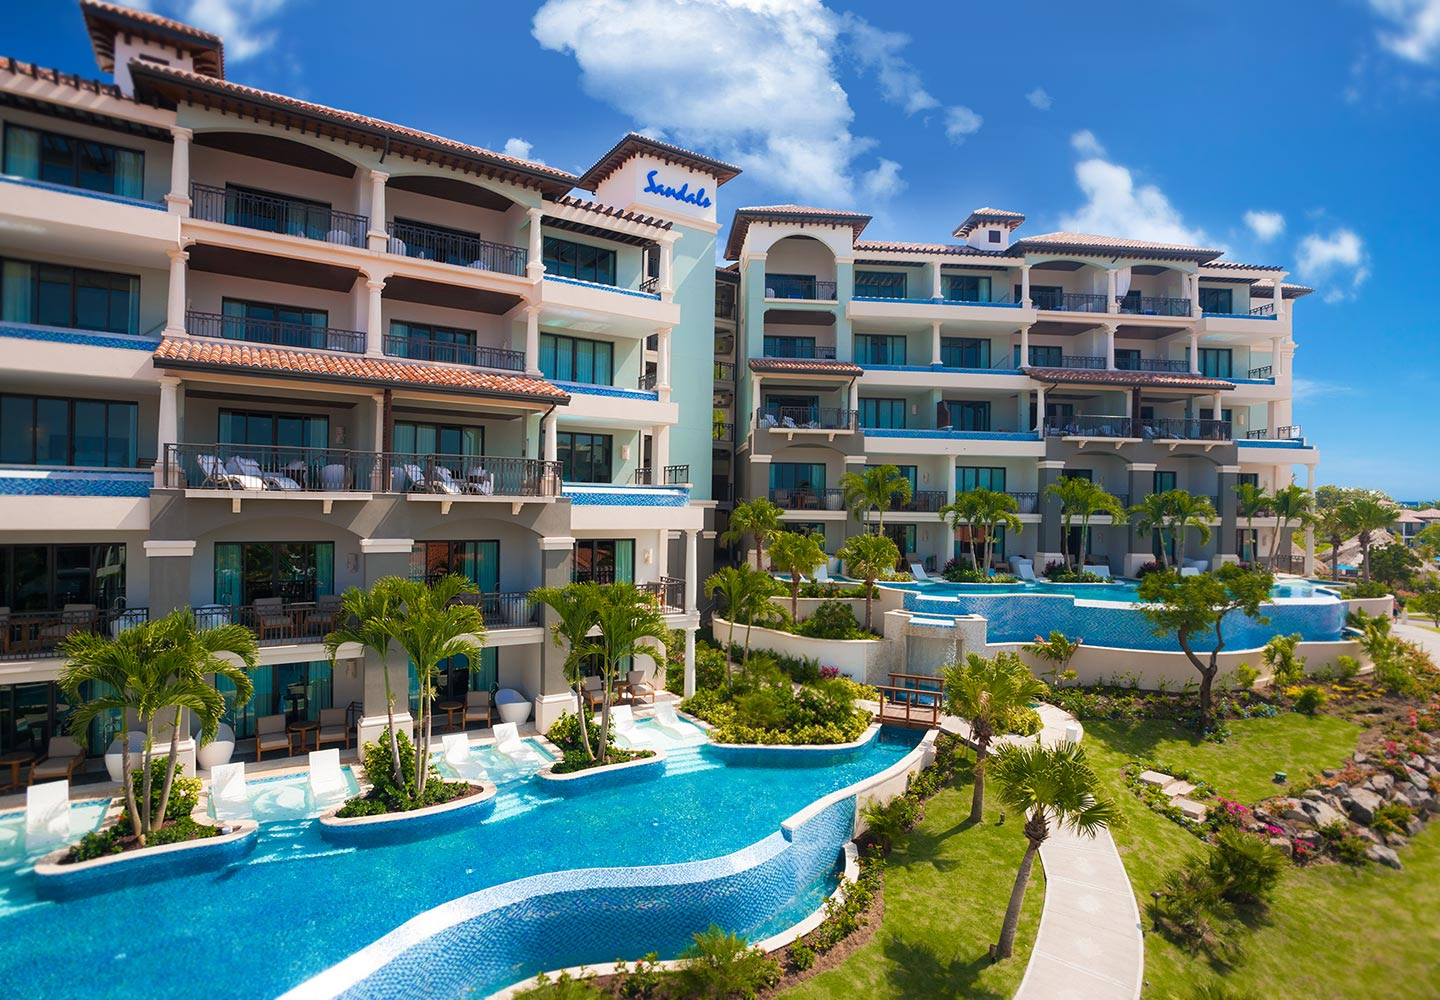 Newest Sandals Resort Which Sandals Resort is the Newest